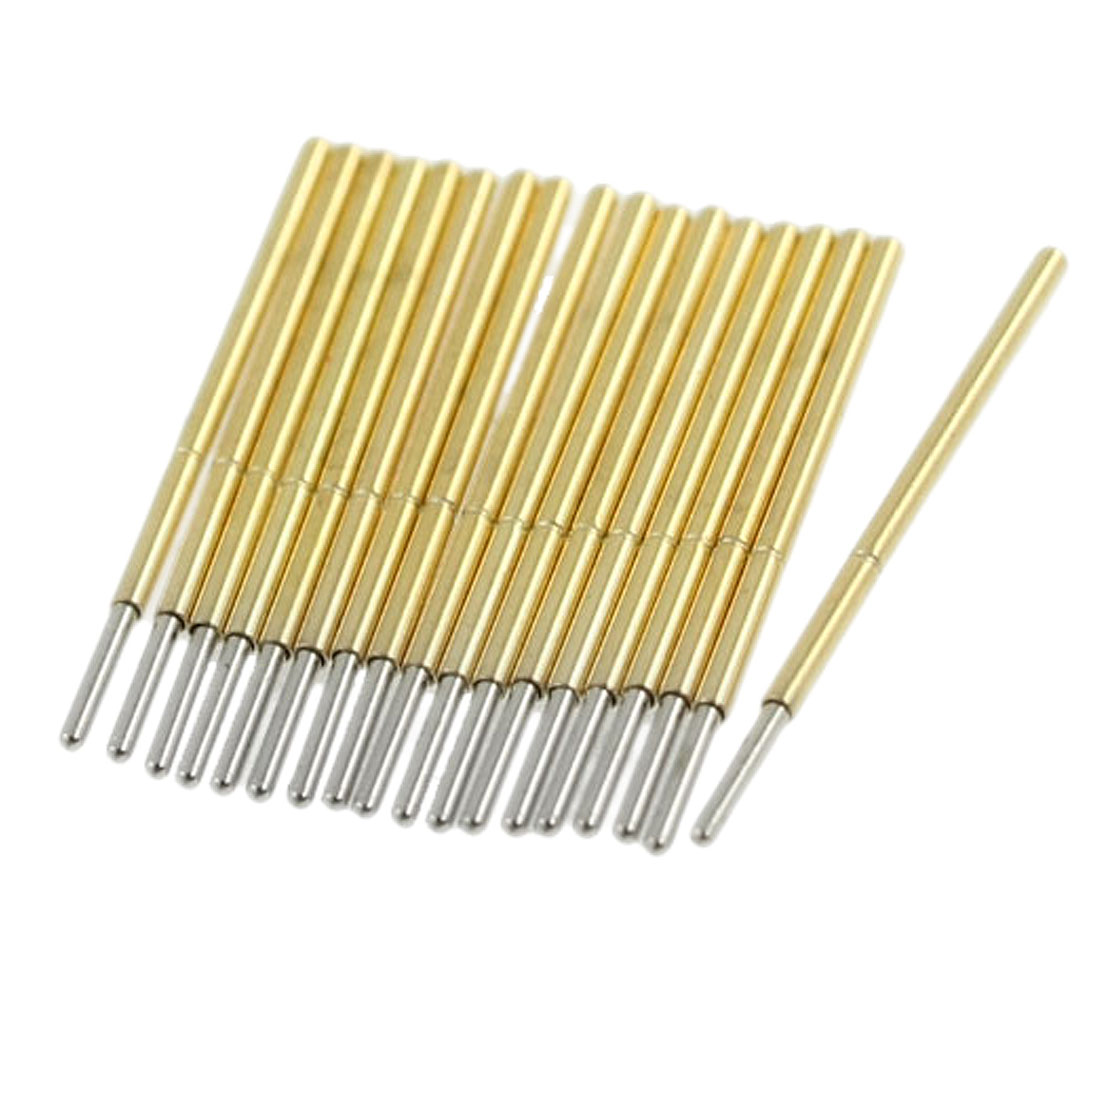 100 Pcs 0.9mm Diameter Round Tip Spring Testing Probe Pins